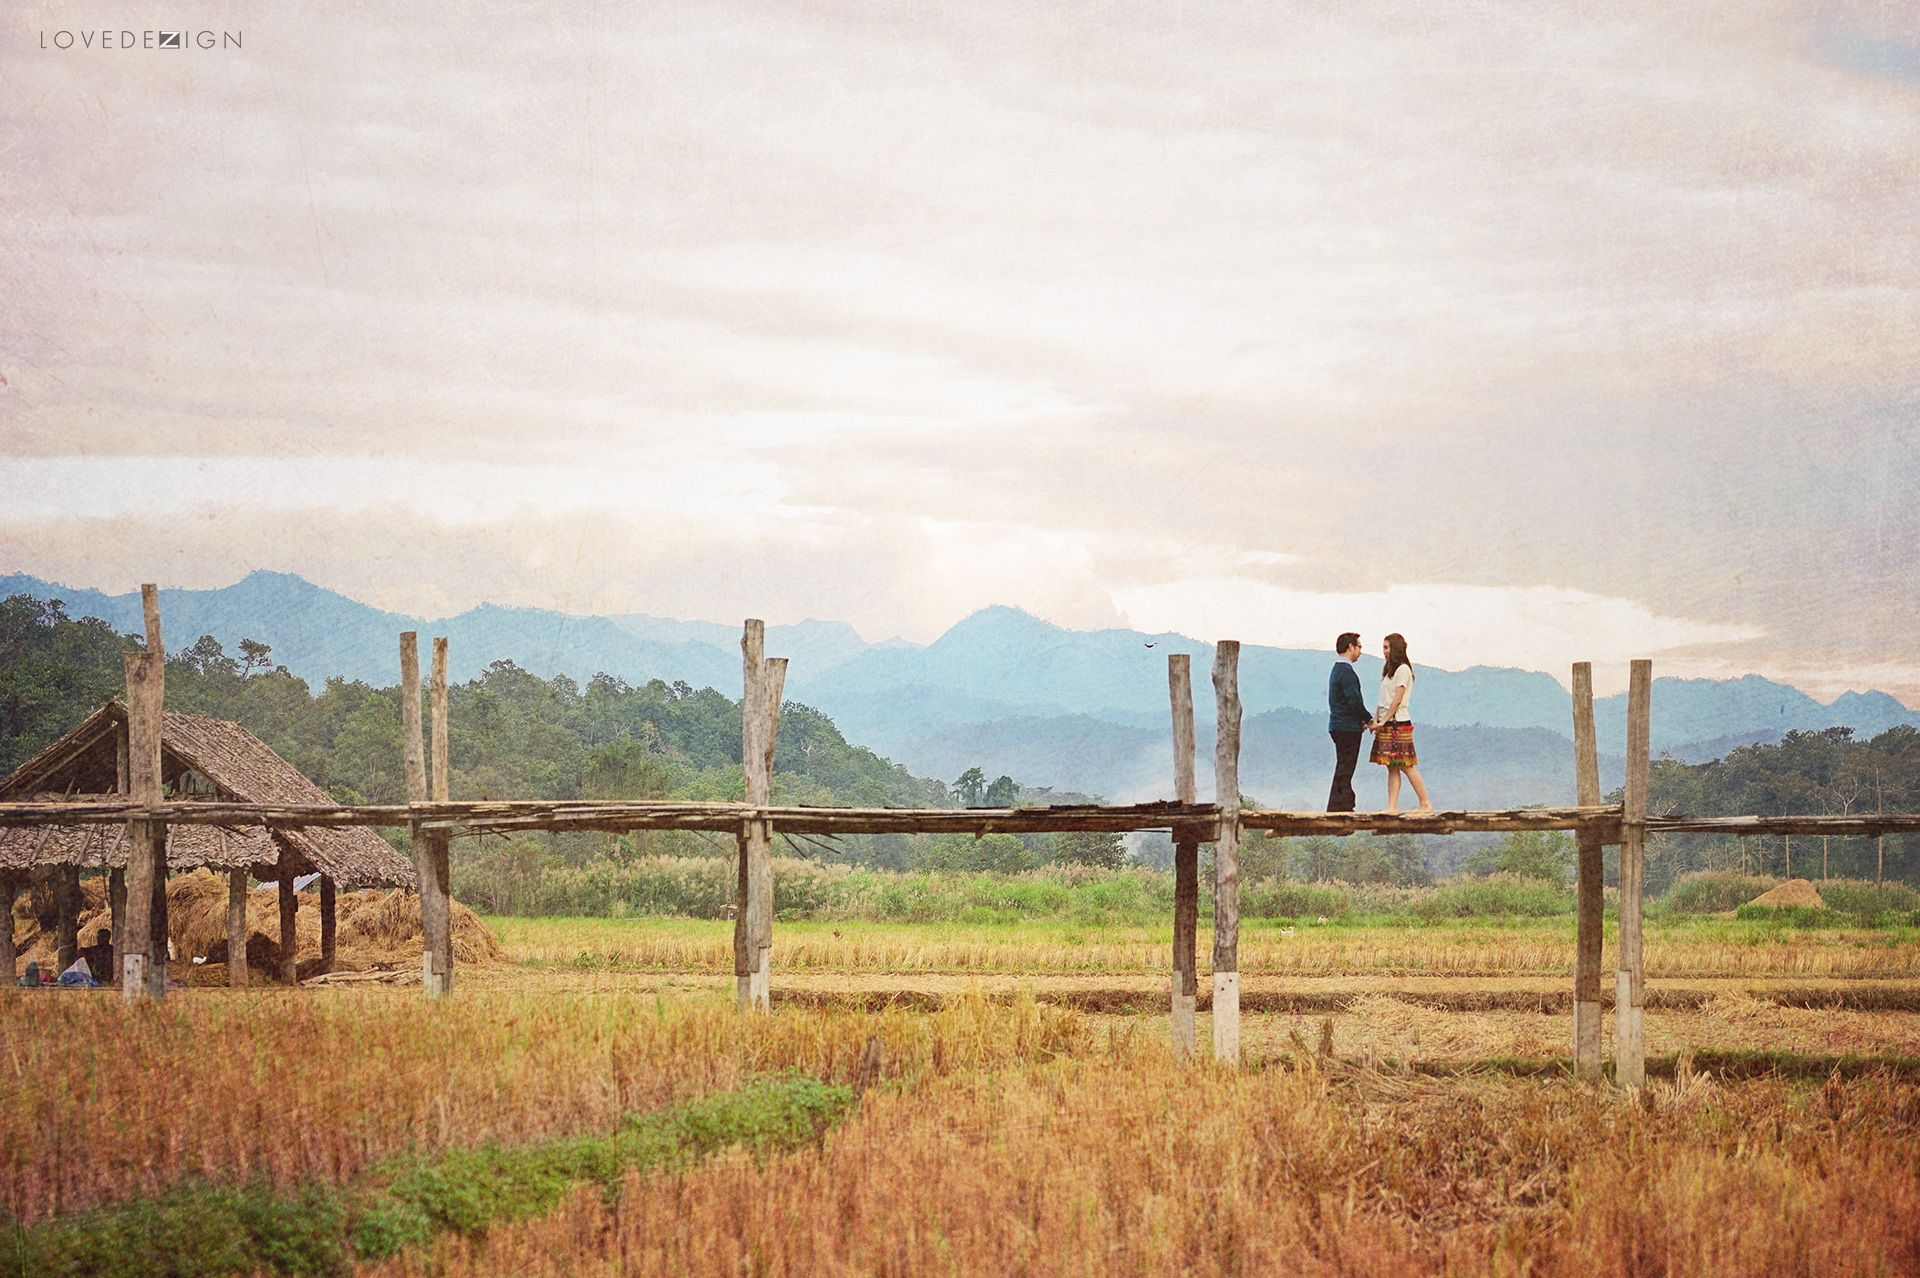 classic and whimsical pre wedding or engagement photography from Su Tong Pae bridge, Mae Hong Son, Thailand